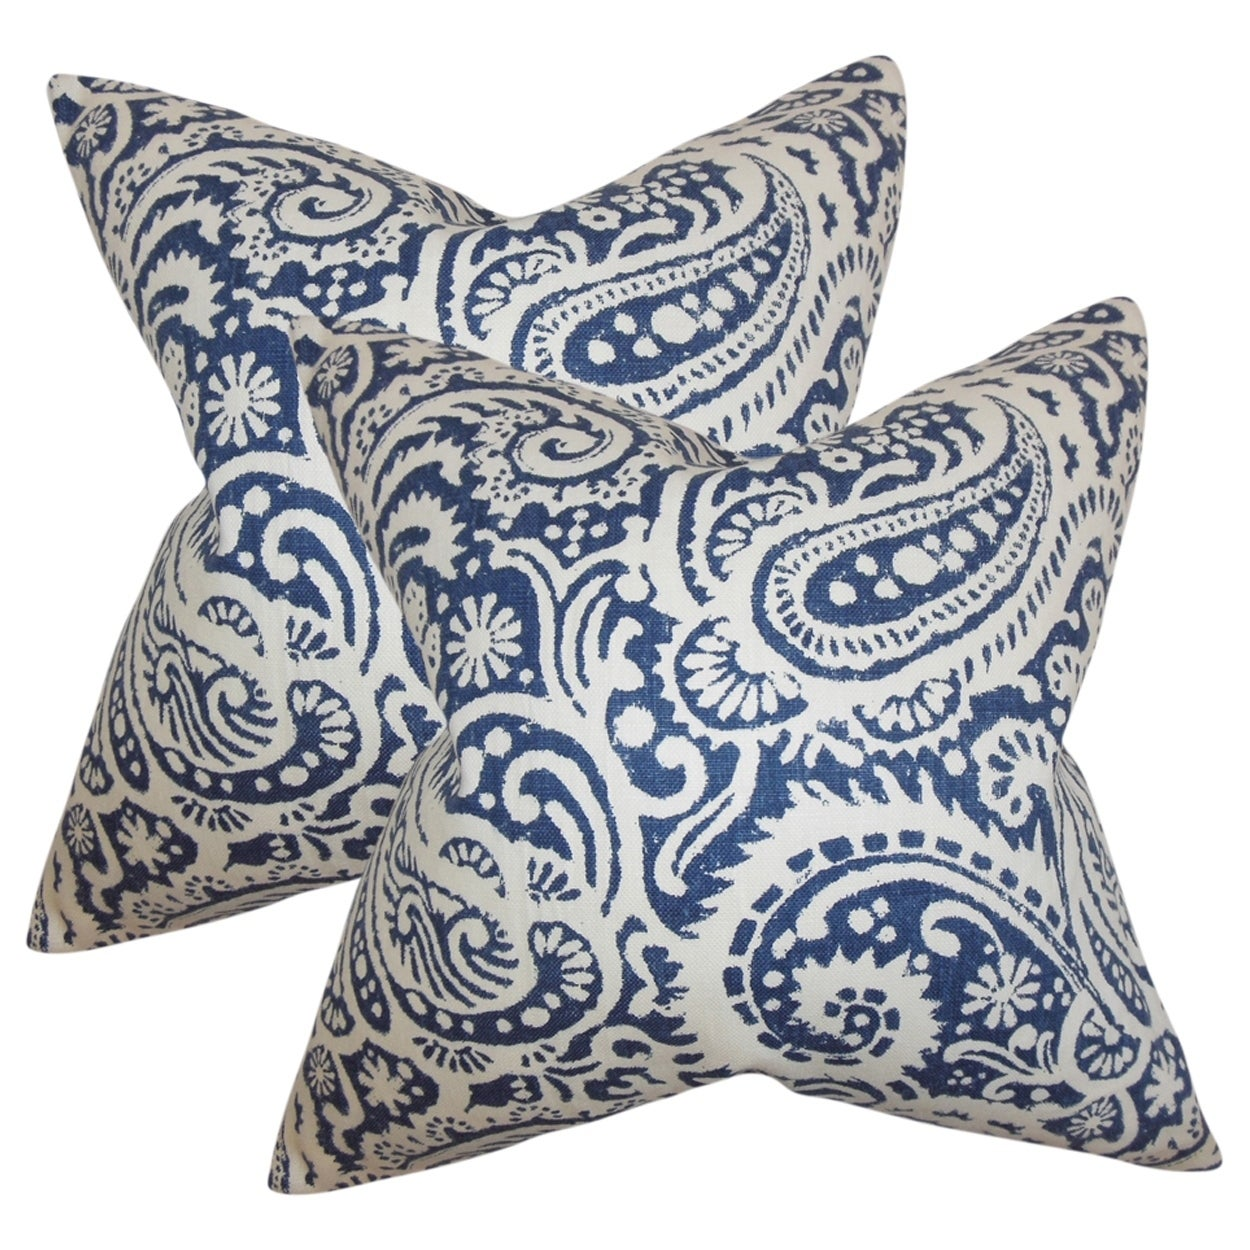 Set of 2  Nellary Paisley Throw Pillows in Indigo